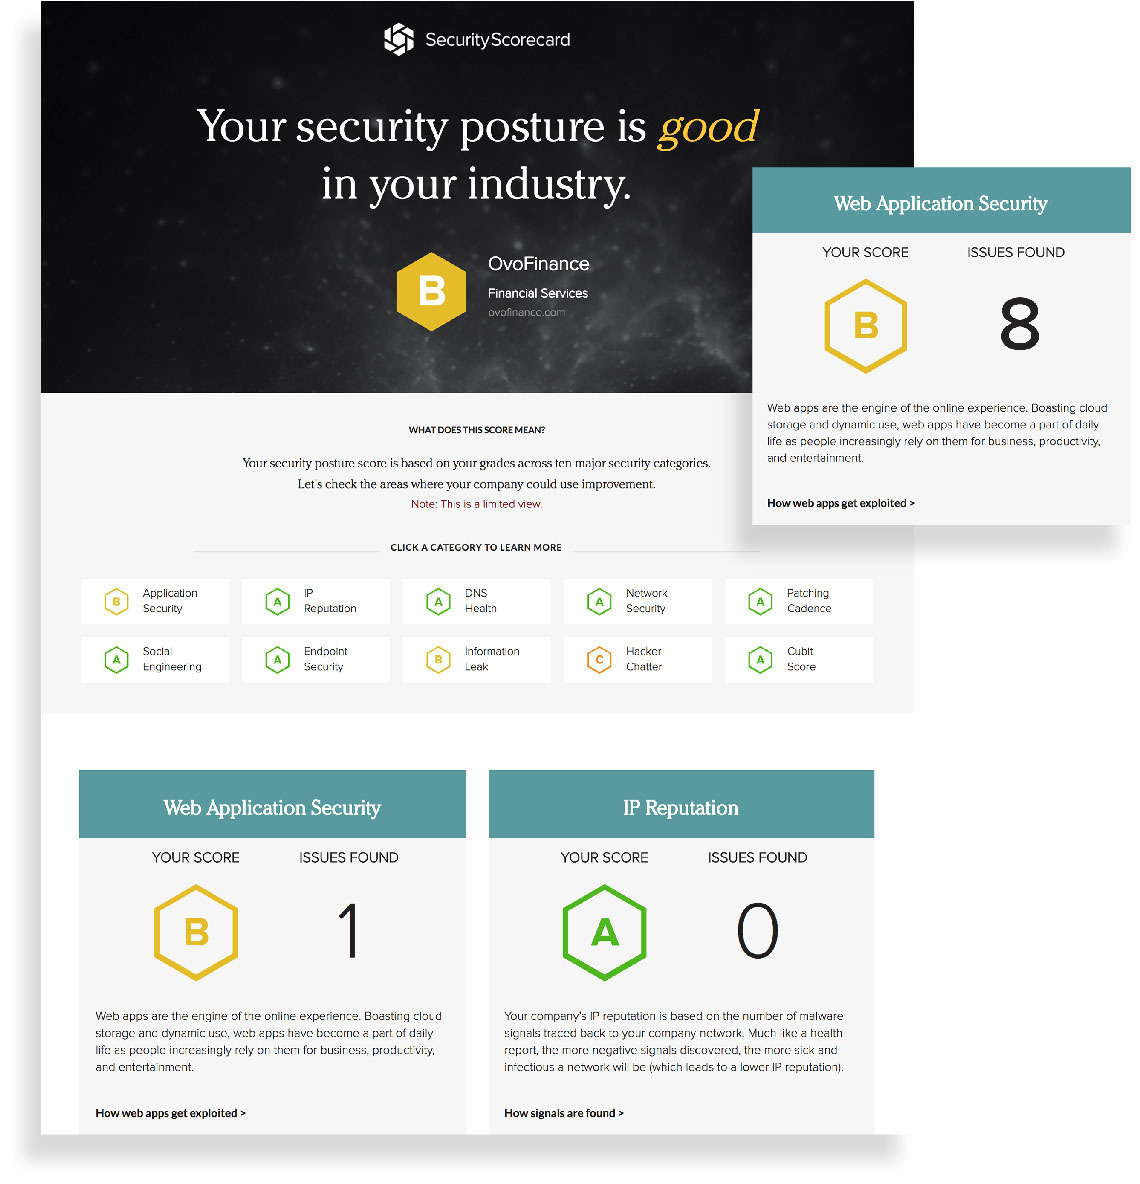 SecurityScorecard Cybersecurity Scoring Module